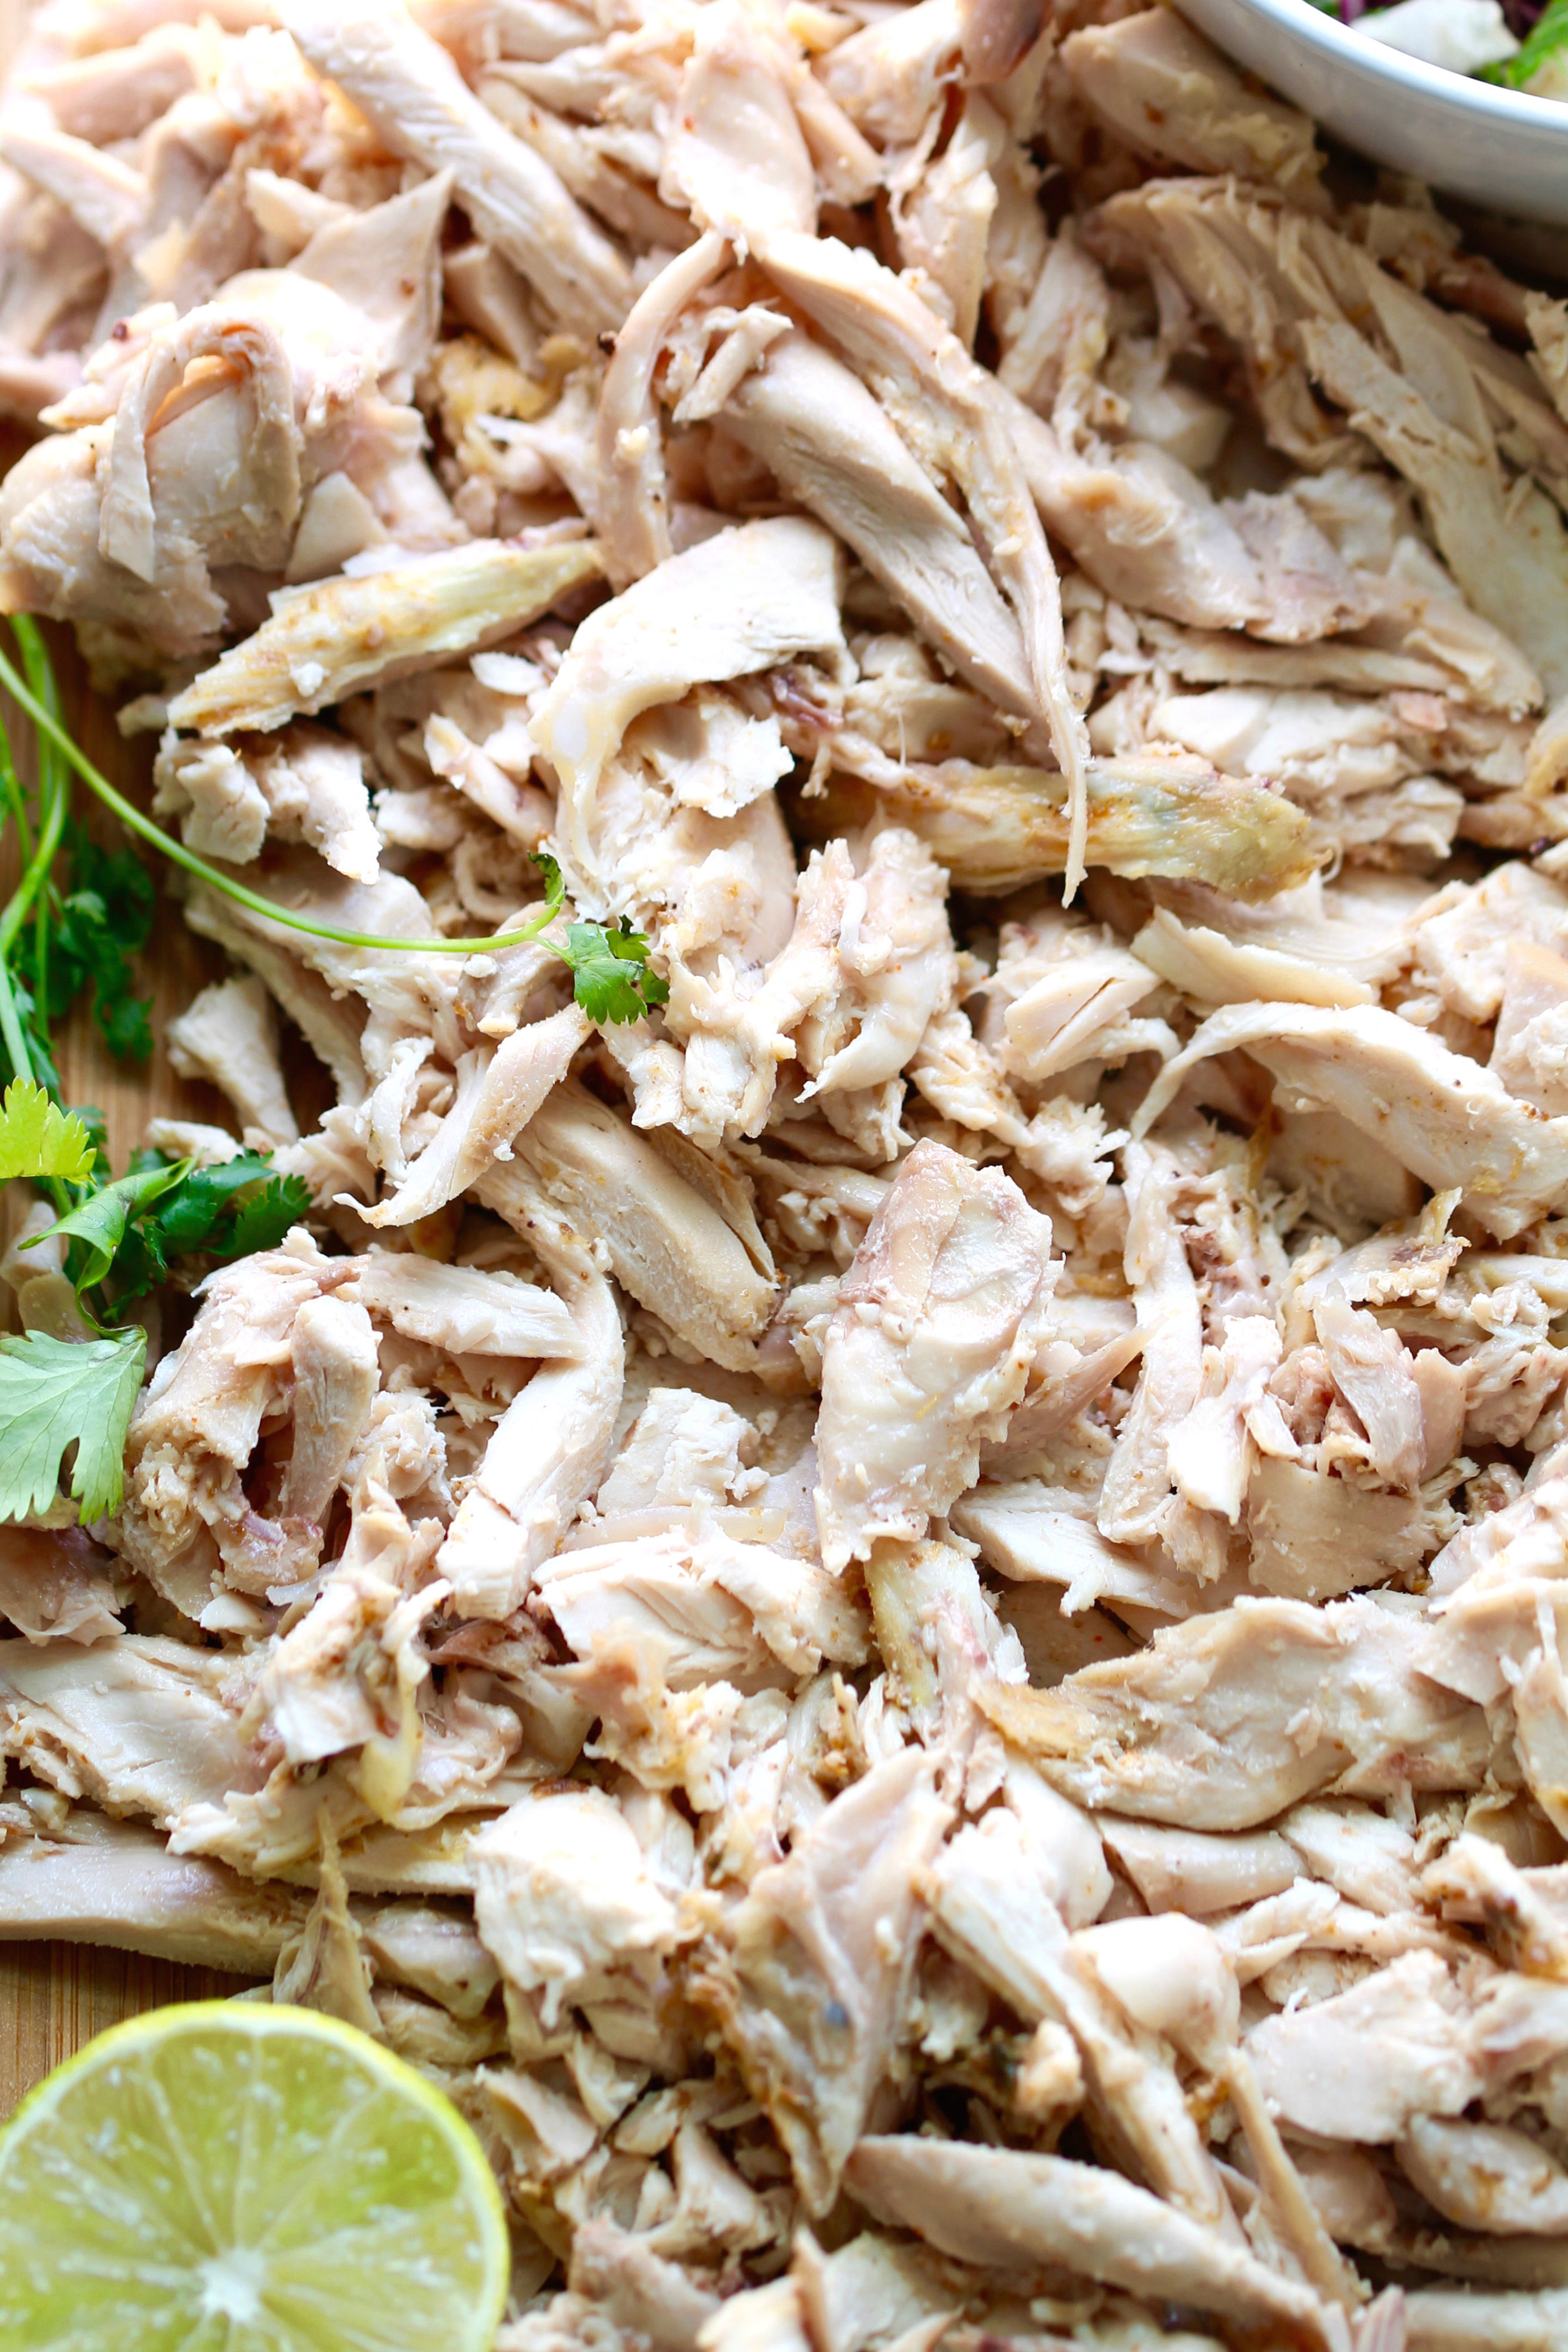 Roasted Chicken Tacos are dinner friendly for the whole family. Everything can be prepped ahead of time or bought directly from the store for convenience.